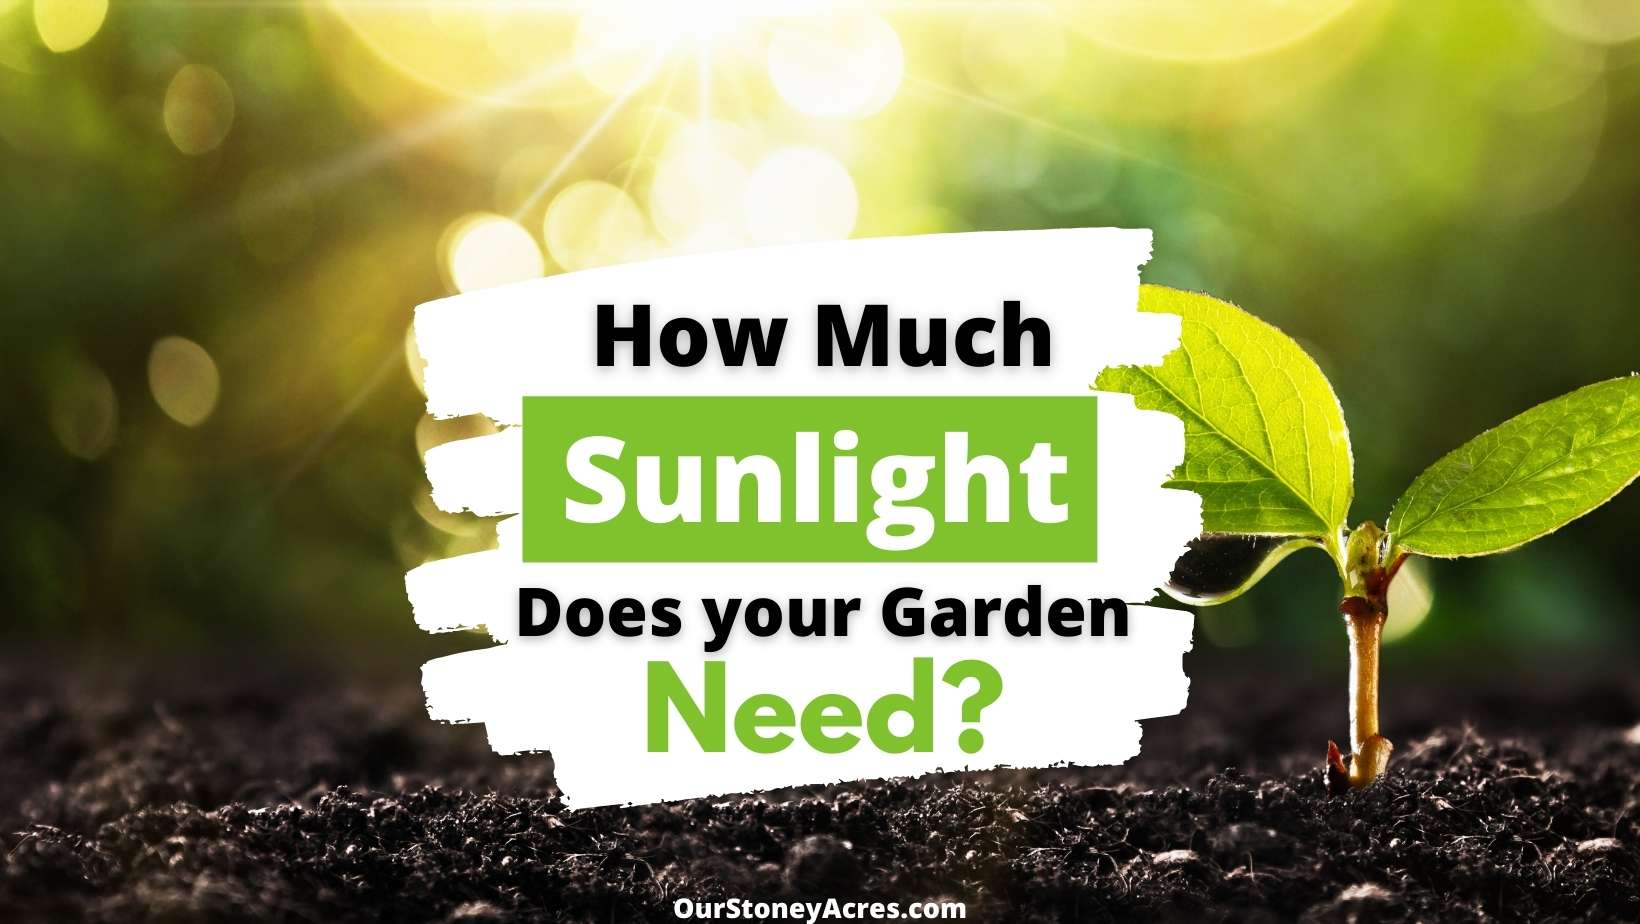 Planting in Full Sun - How much sunlight does your garden need?